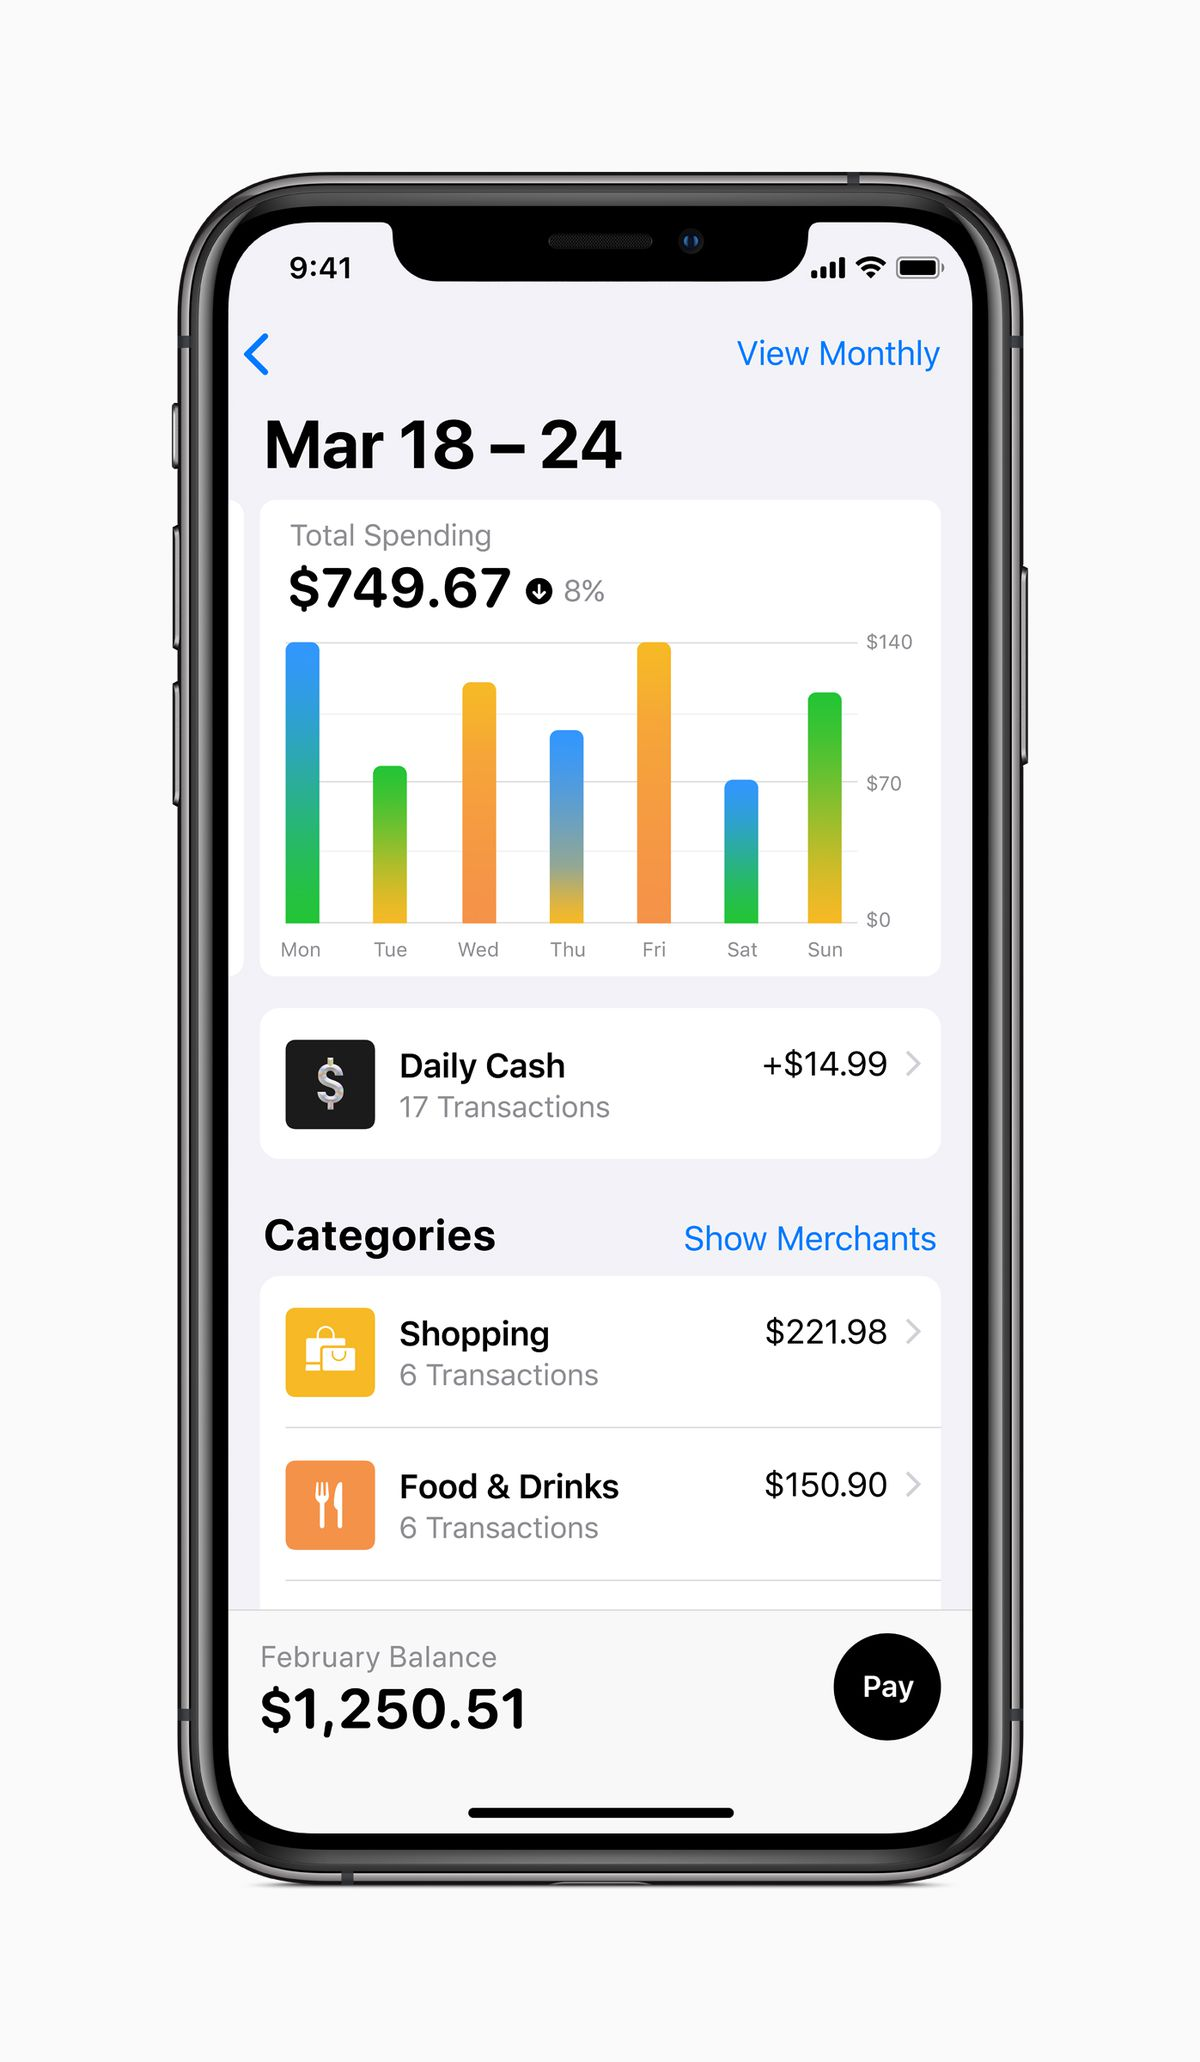 Apple Card breaks down your spending habits like a budgeting app would.